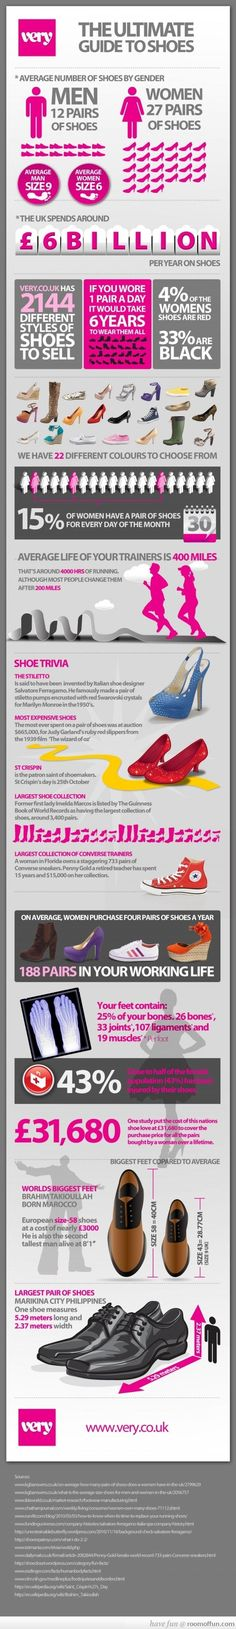 The Ultimate Guide To Shoes - Some Facts And Stats #fashion #shoes